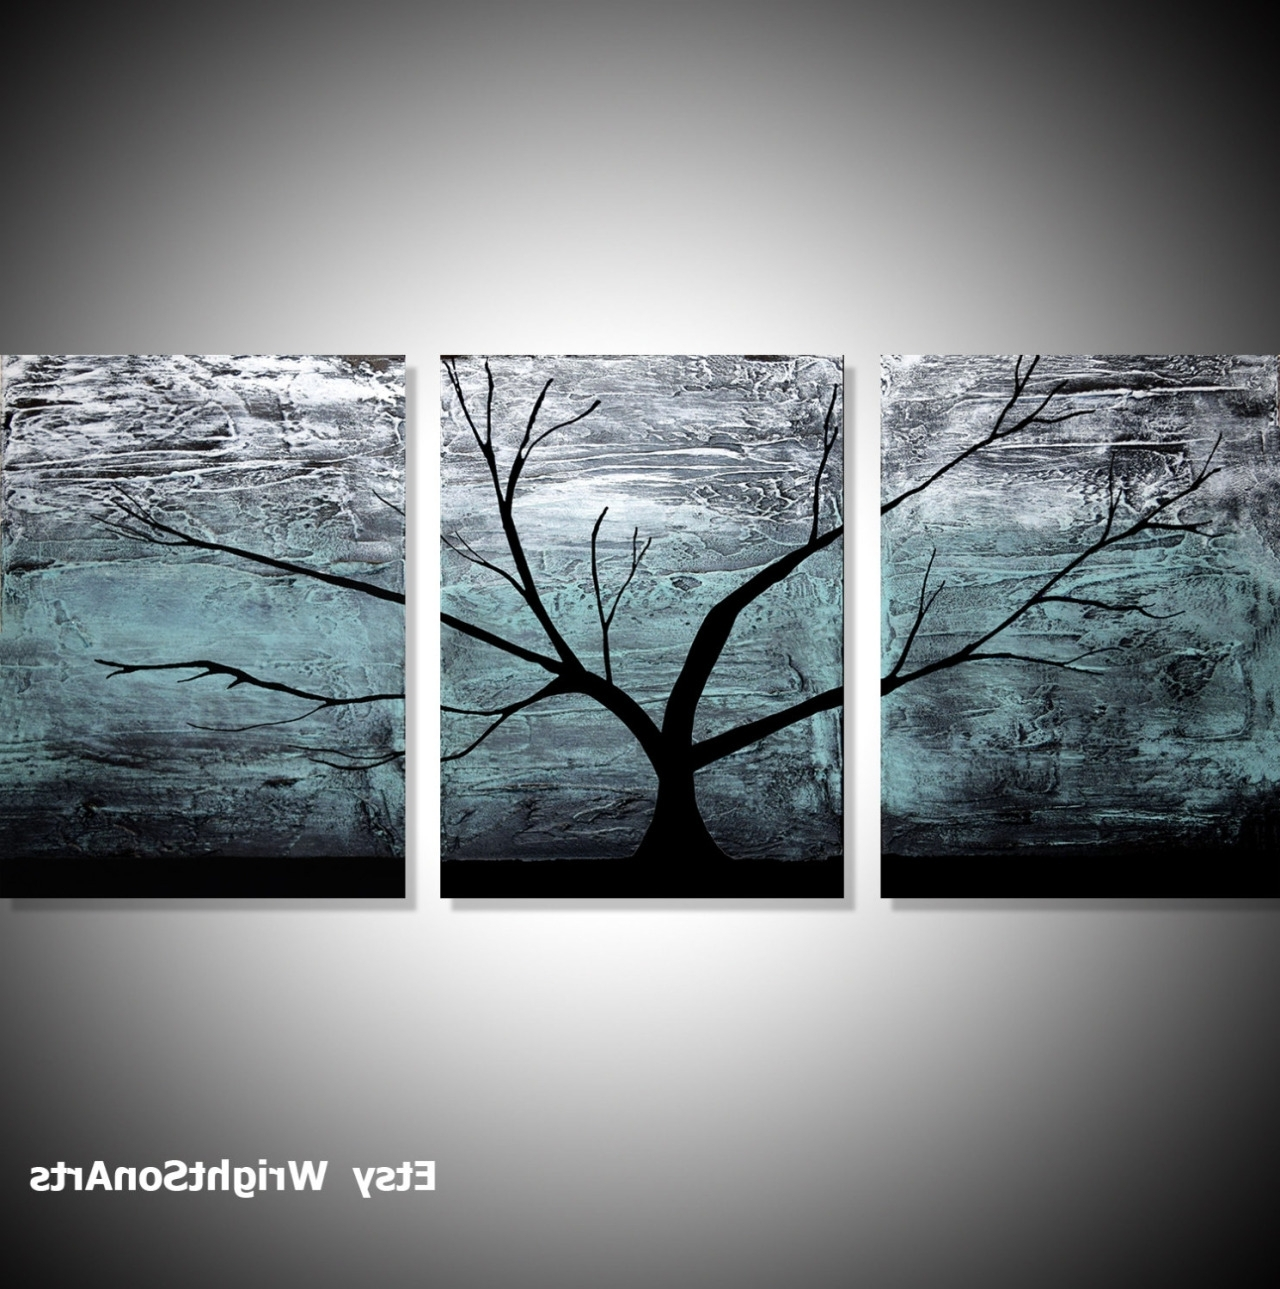 Widely Used Wall Art Designs: Large Wall Art Original Acrylic Paintings On With Regard To Large Triptych Wall Art (View 3 of 15)